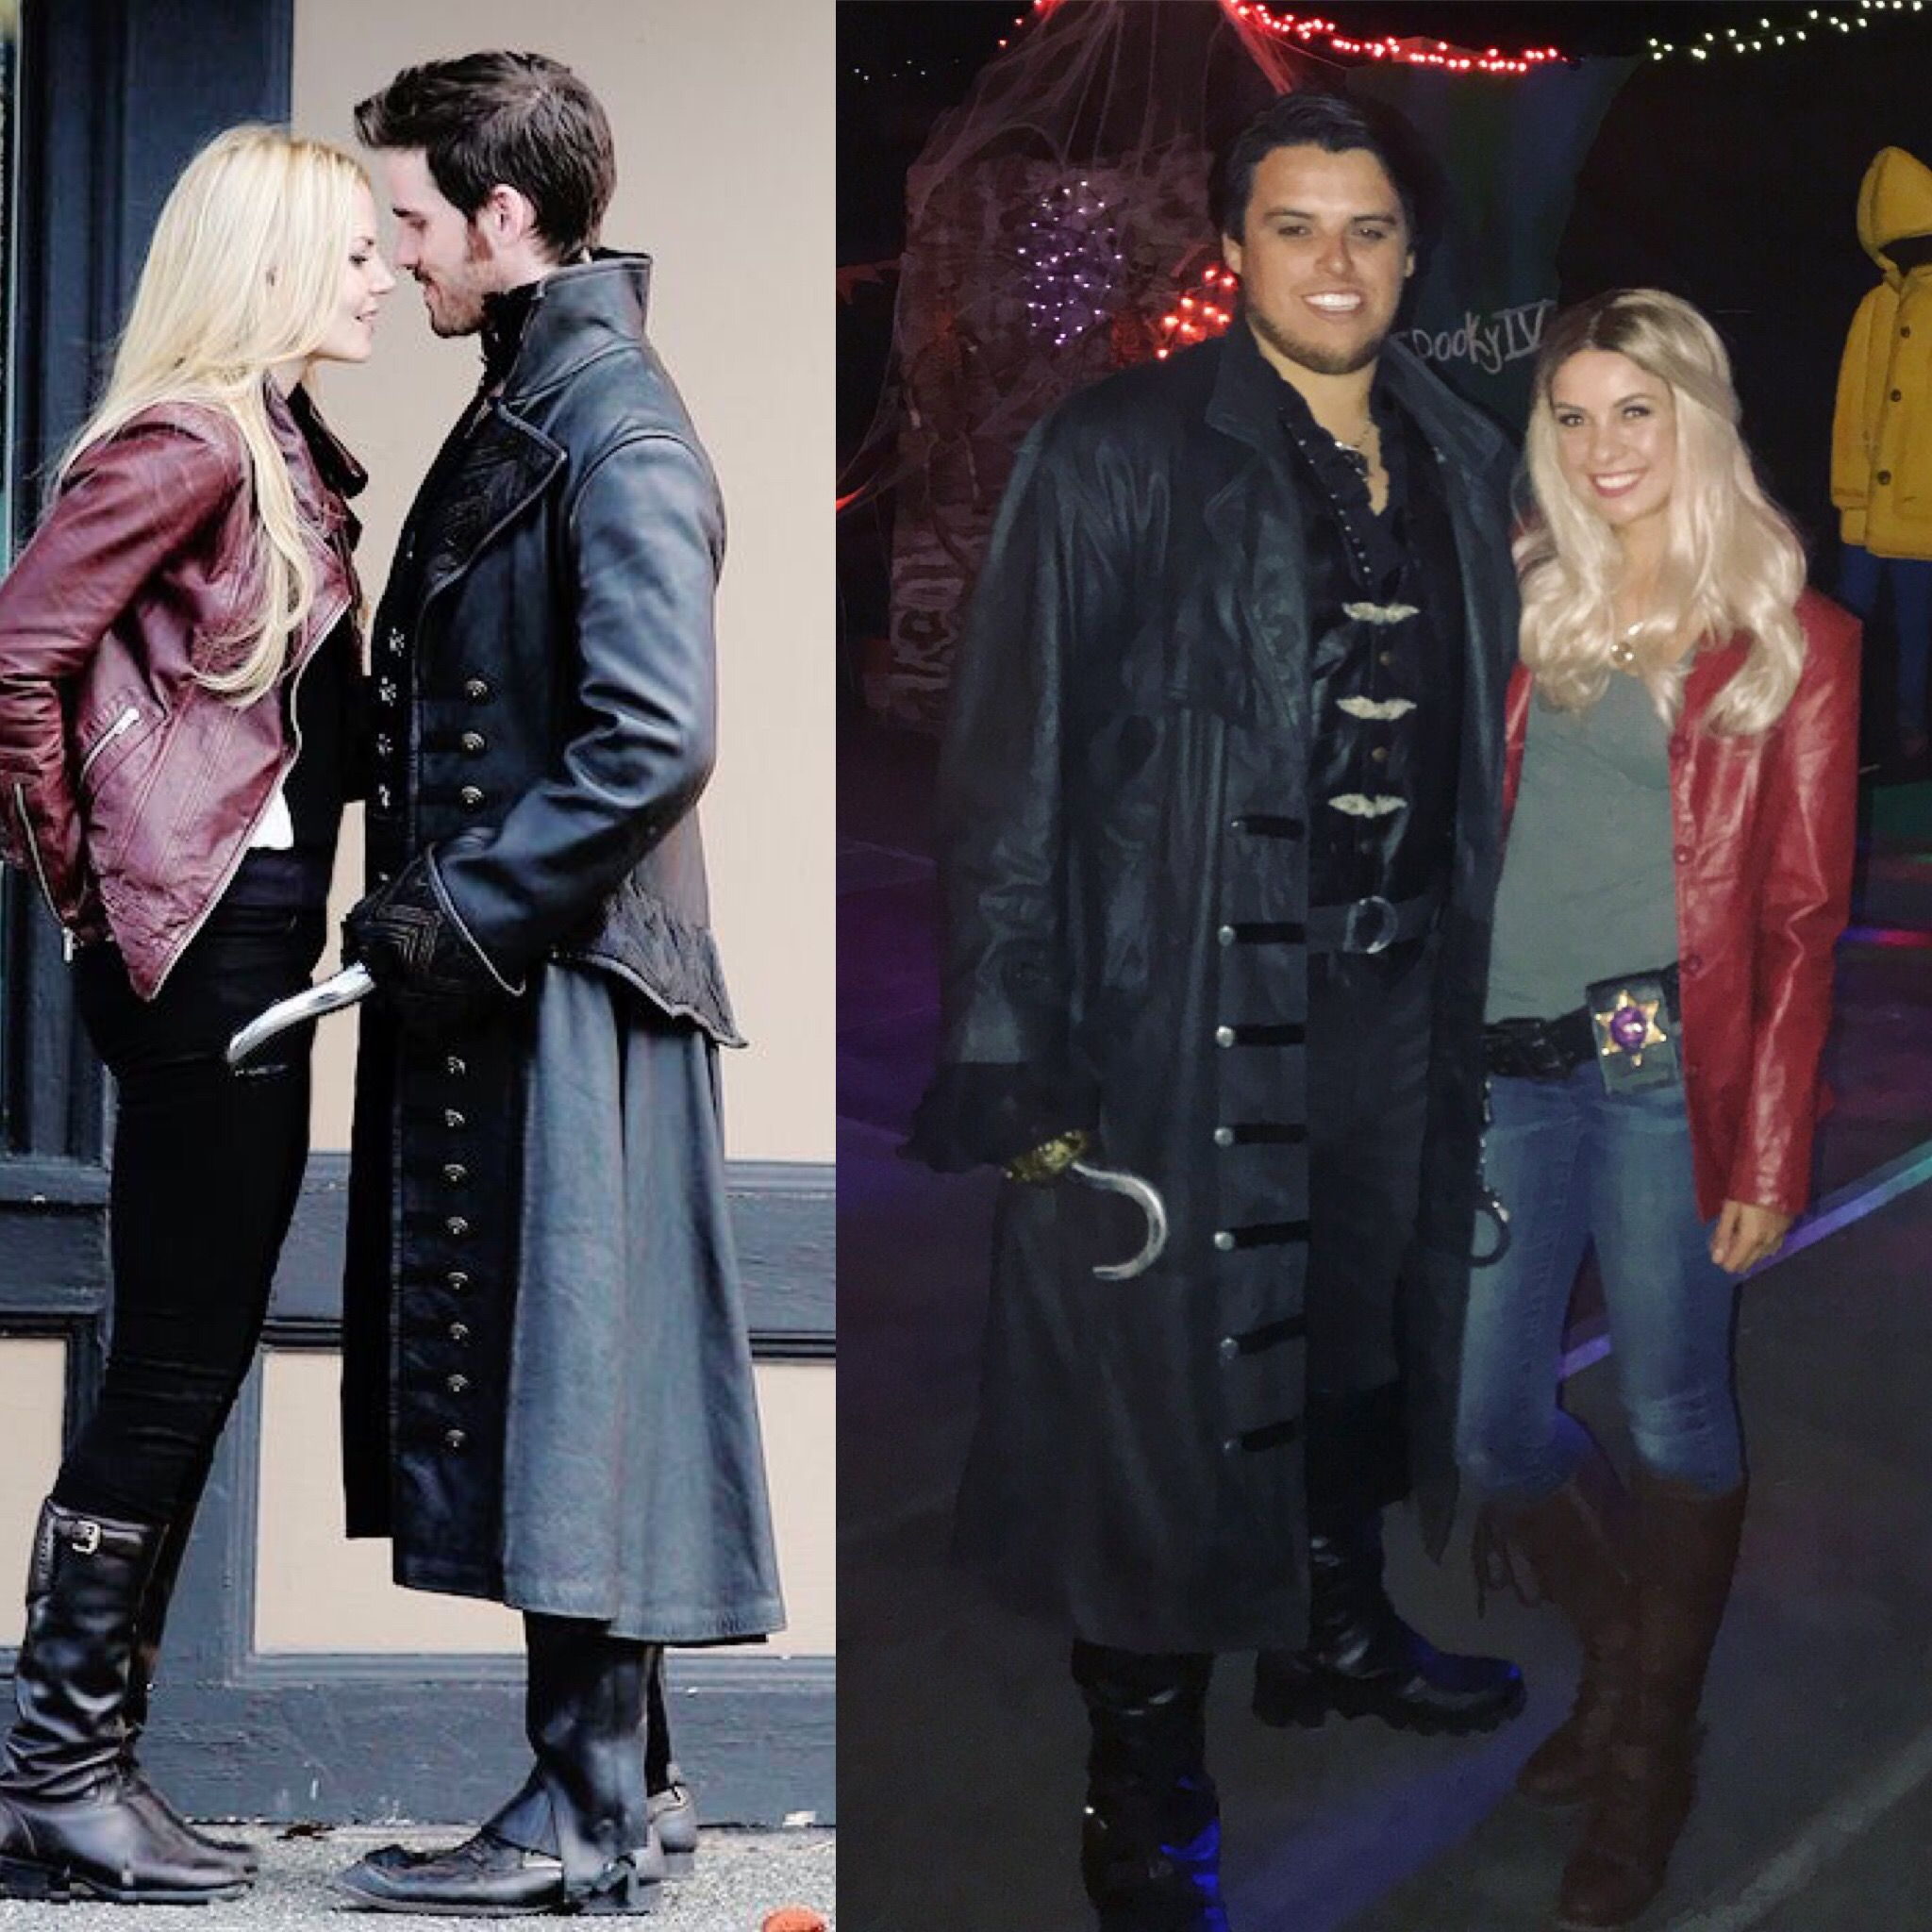 d52ec80f4 Once Upon a Time costume. Captain Hook & Emma Swan | Halloween ...